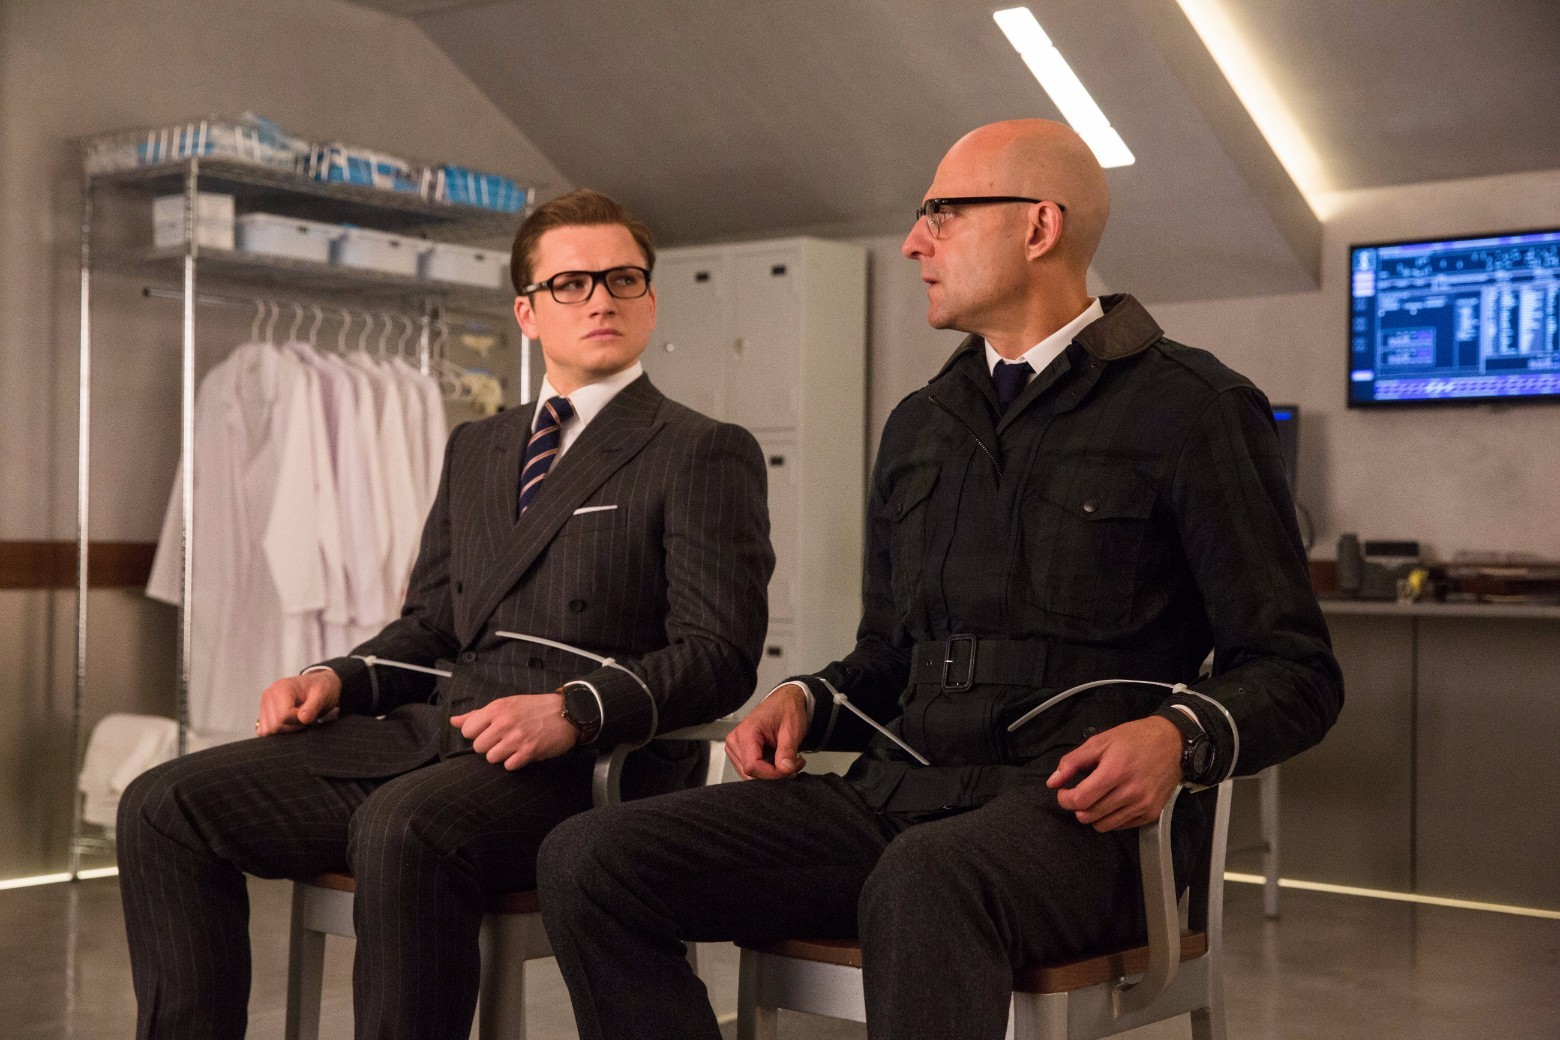 Taron Egerton and Mark Strong tied to chairs